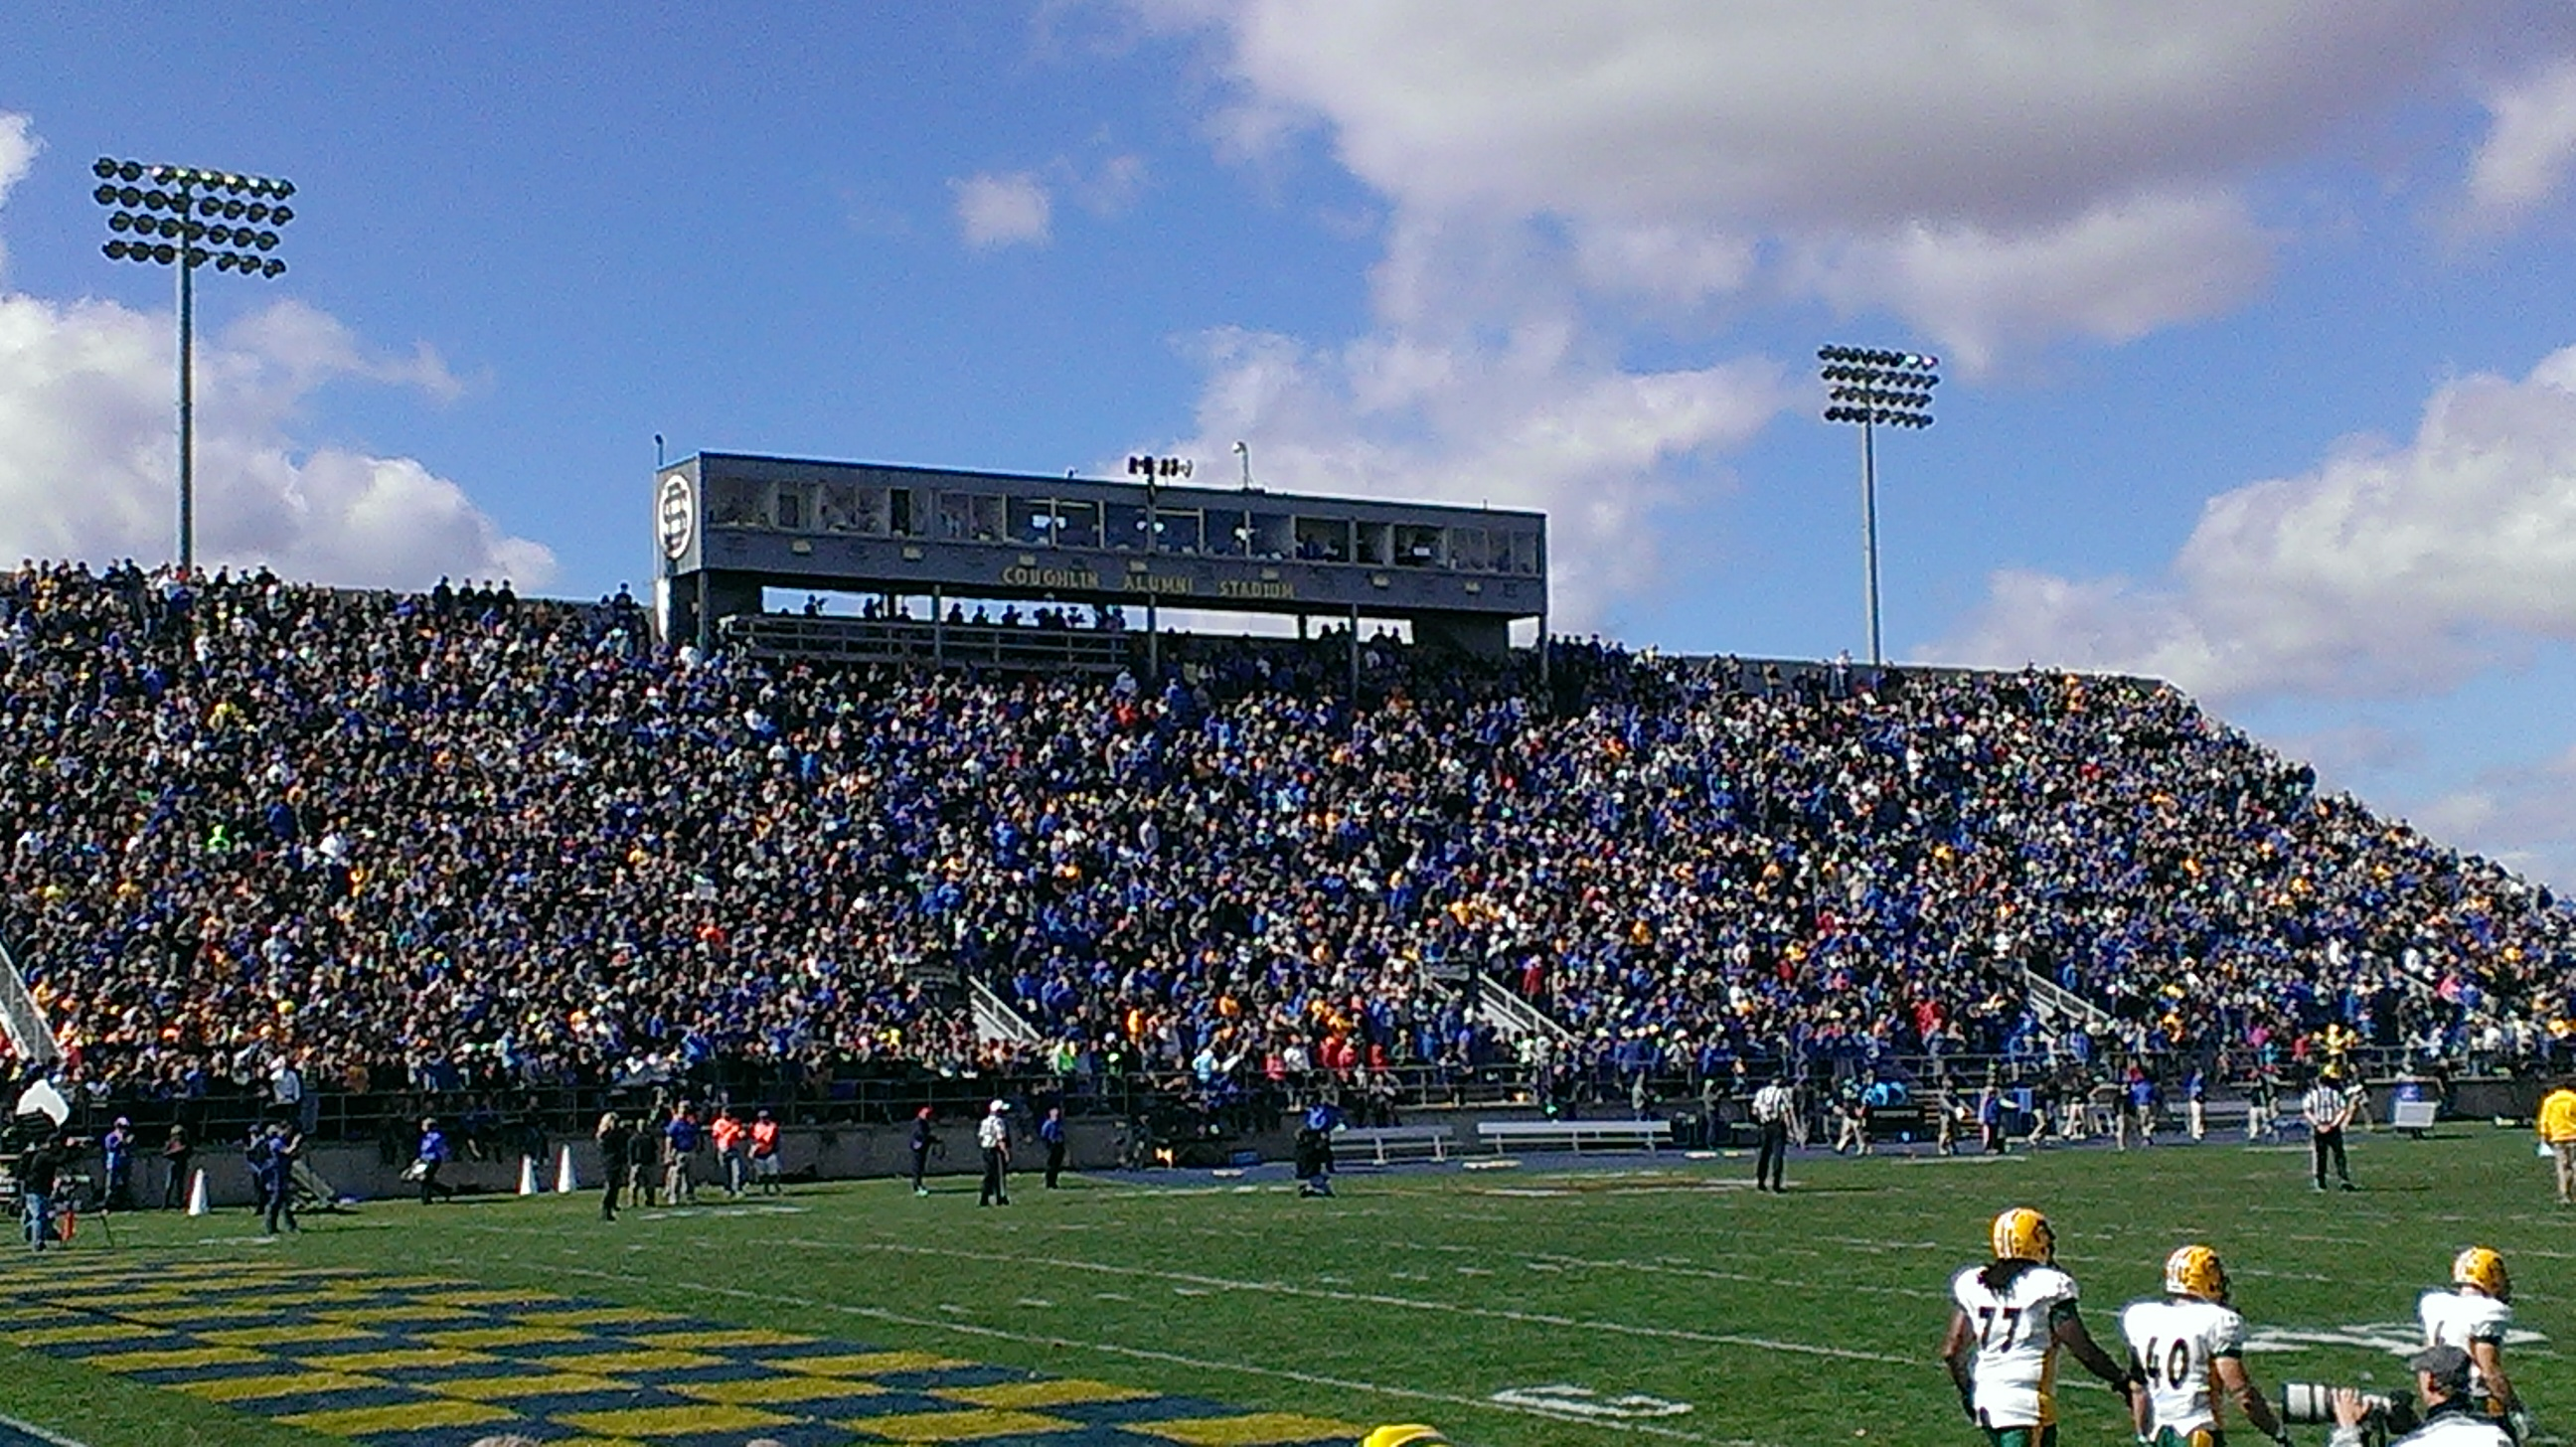 The football field and stadium at South Dakota State University.